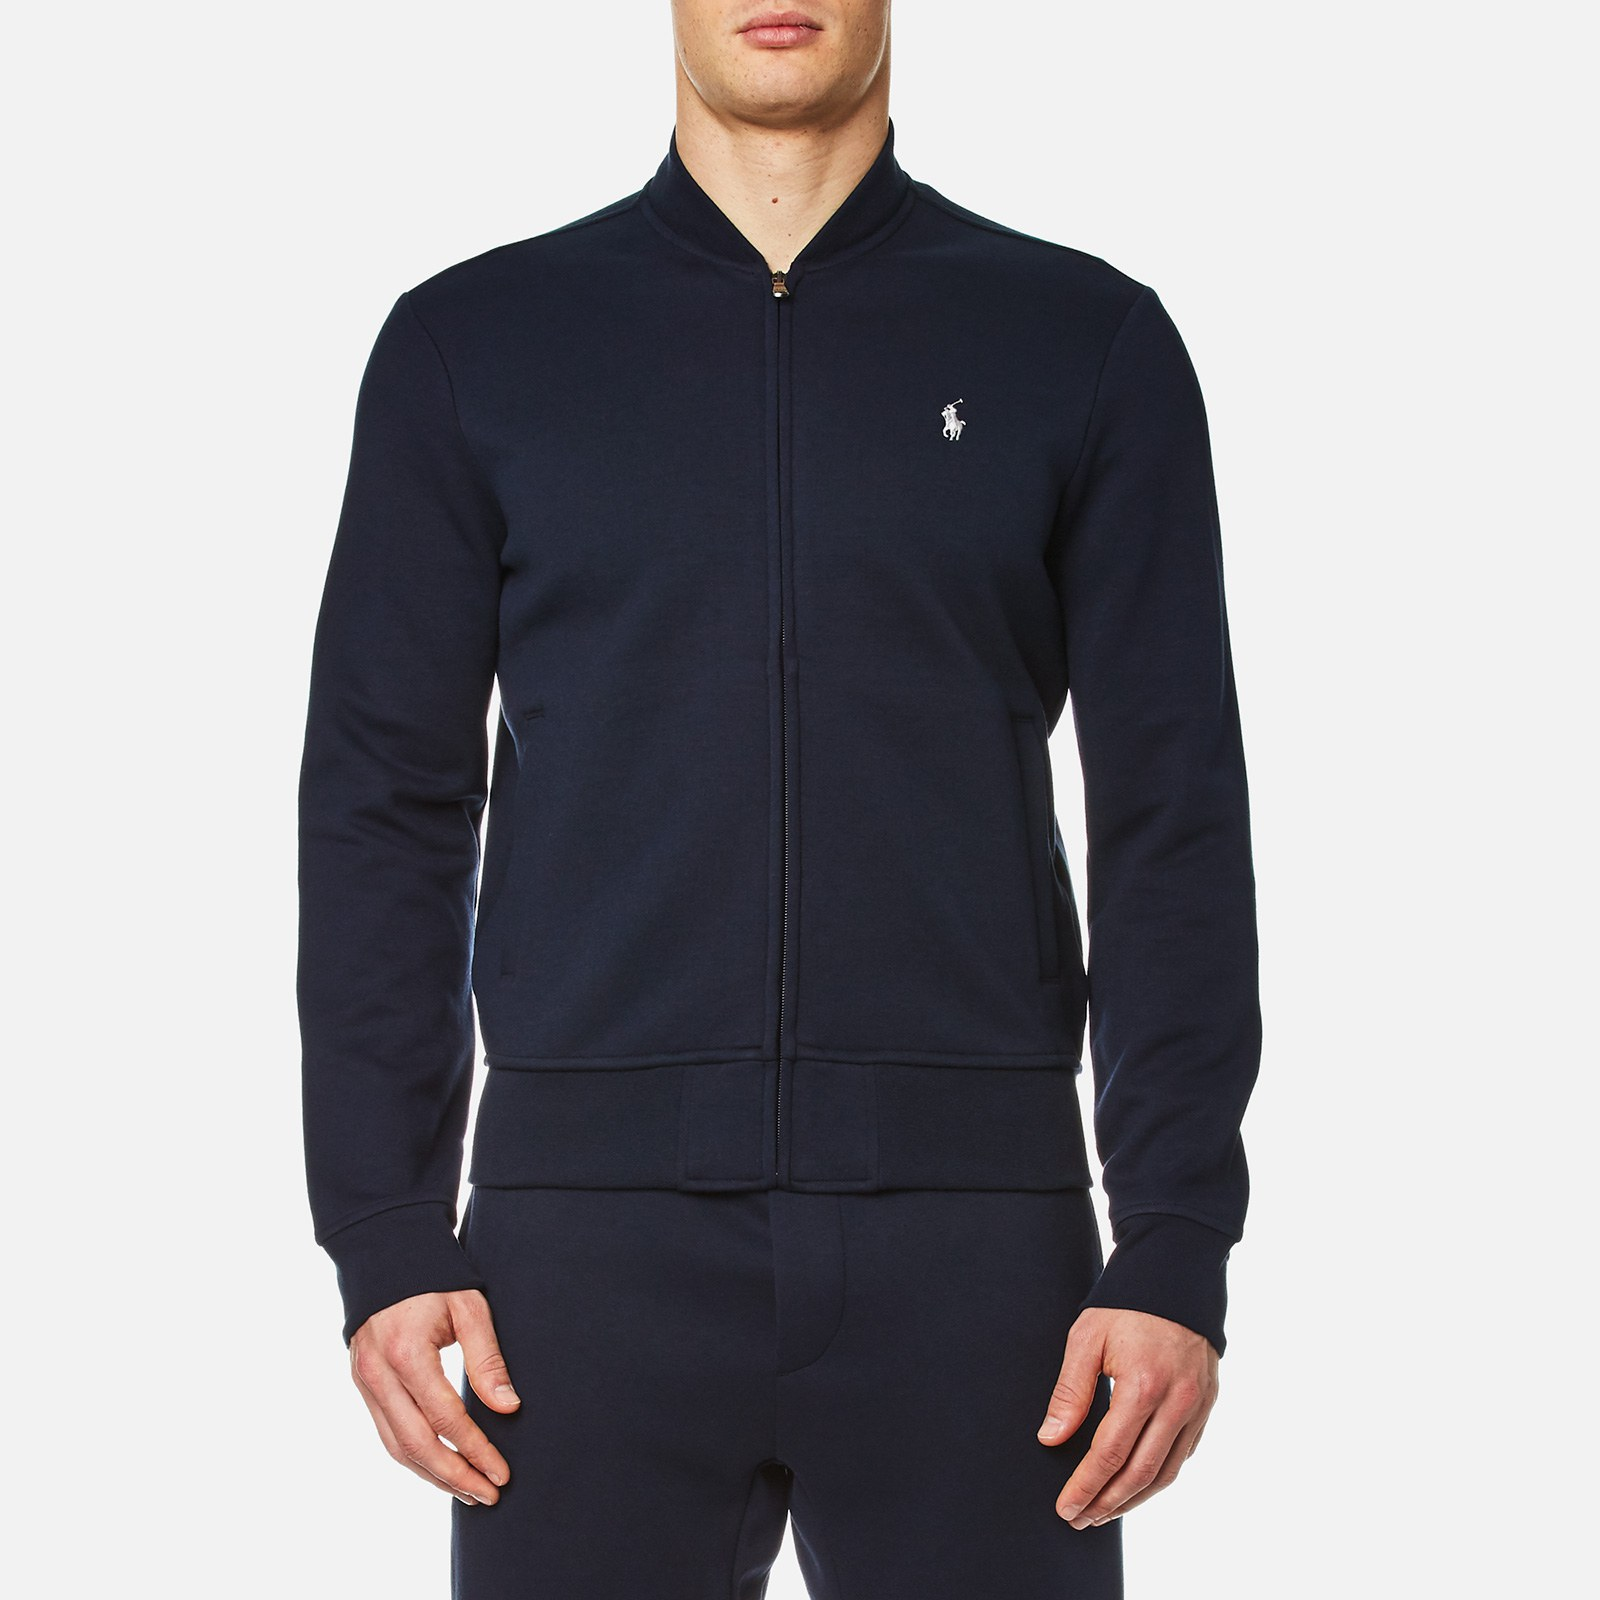 731311425 Polo Ralph Lauren Men s Double Knitted Tech Bomber Jacket - Navy - Free UK  Delivery over £50